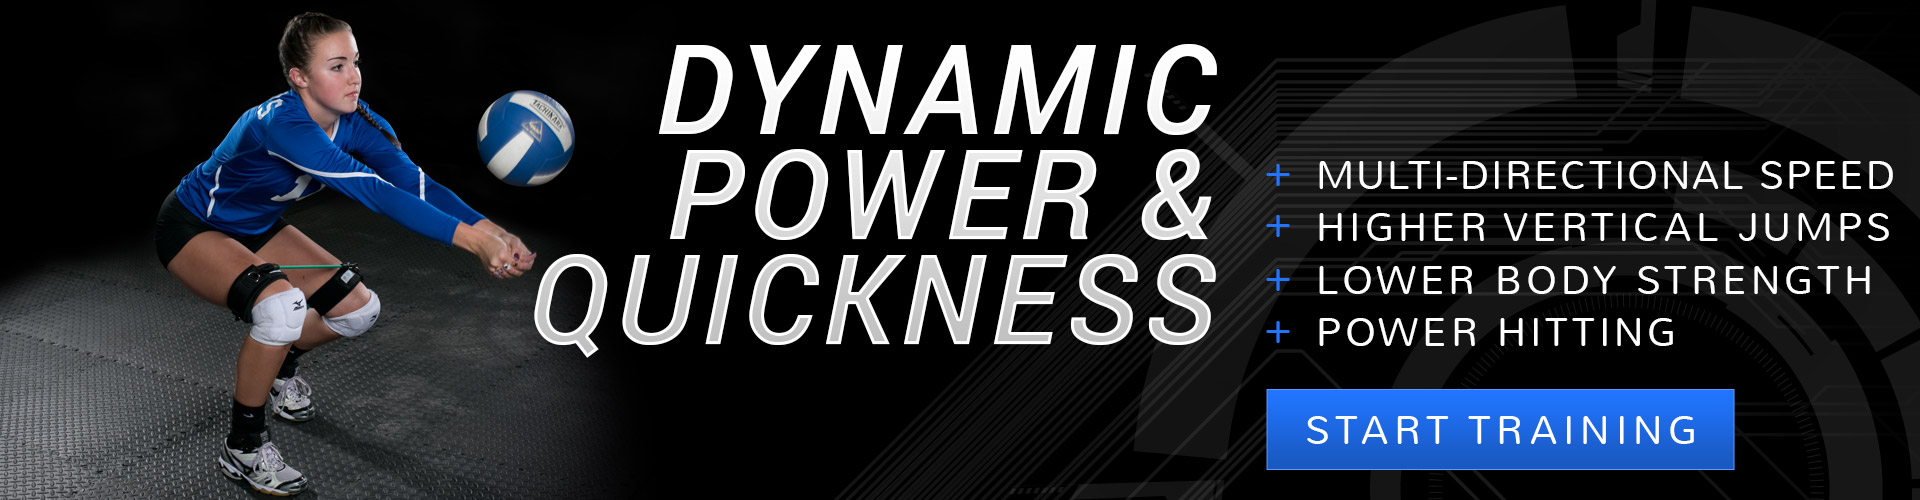 Get dynamic power and quickness in volleyball when you train with Kinetic Bands. Improve multi-directional speed, higher vertical jumps, lower body strength, power hitting. Free athletic stretching strap with the purchase of Kinetic Bands.